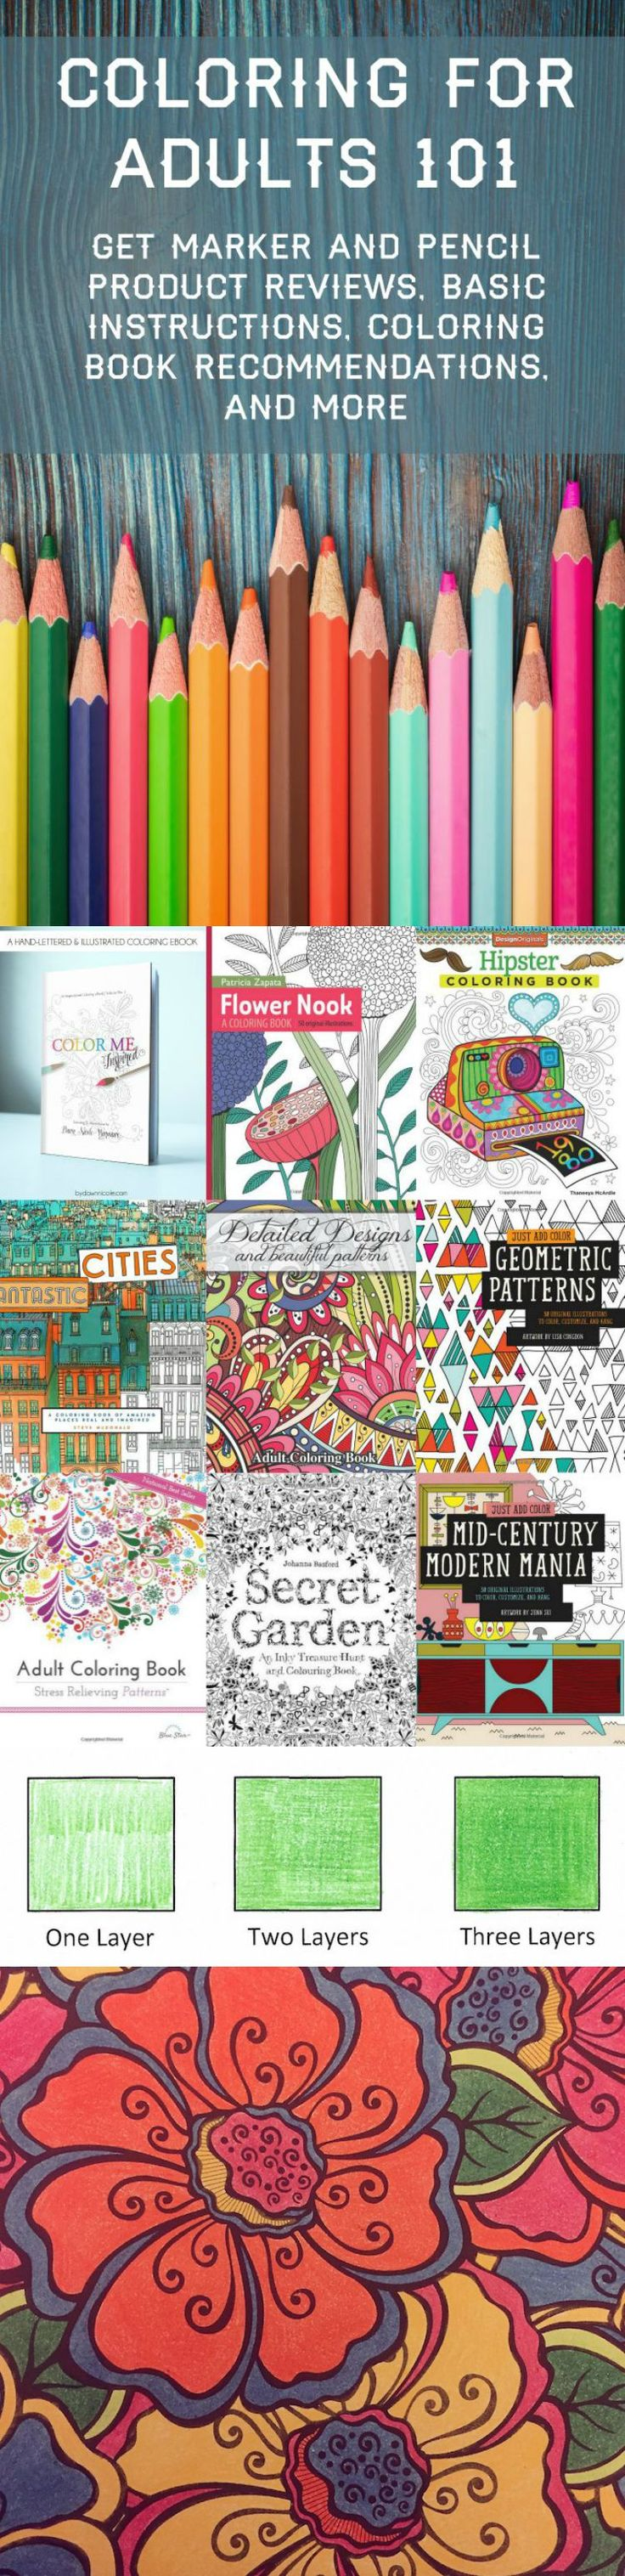 Coloring book pages pinterest - Coloring For Adults 101 Your Complete Guide